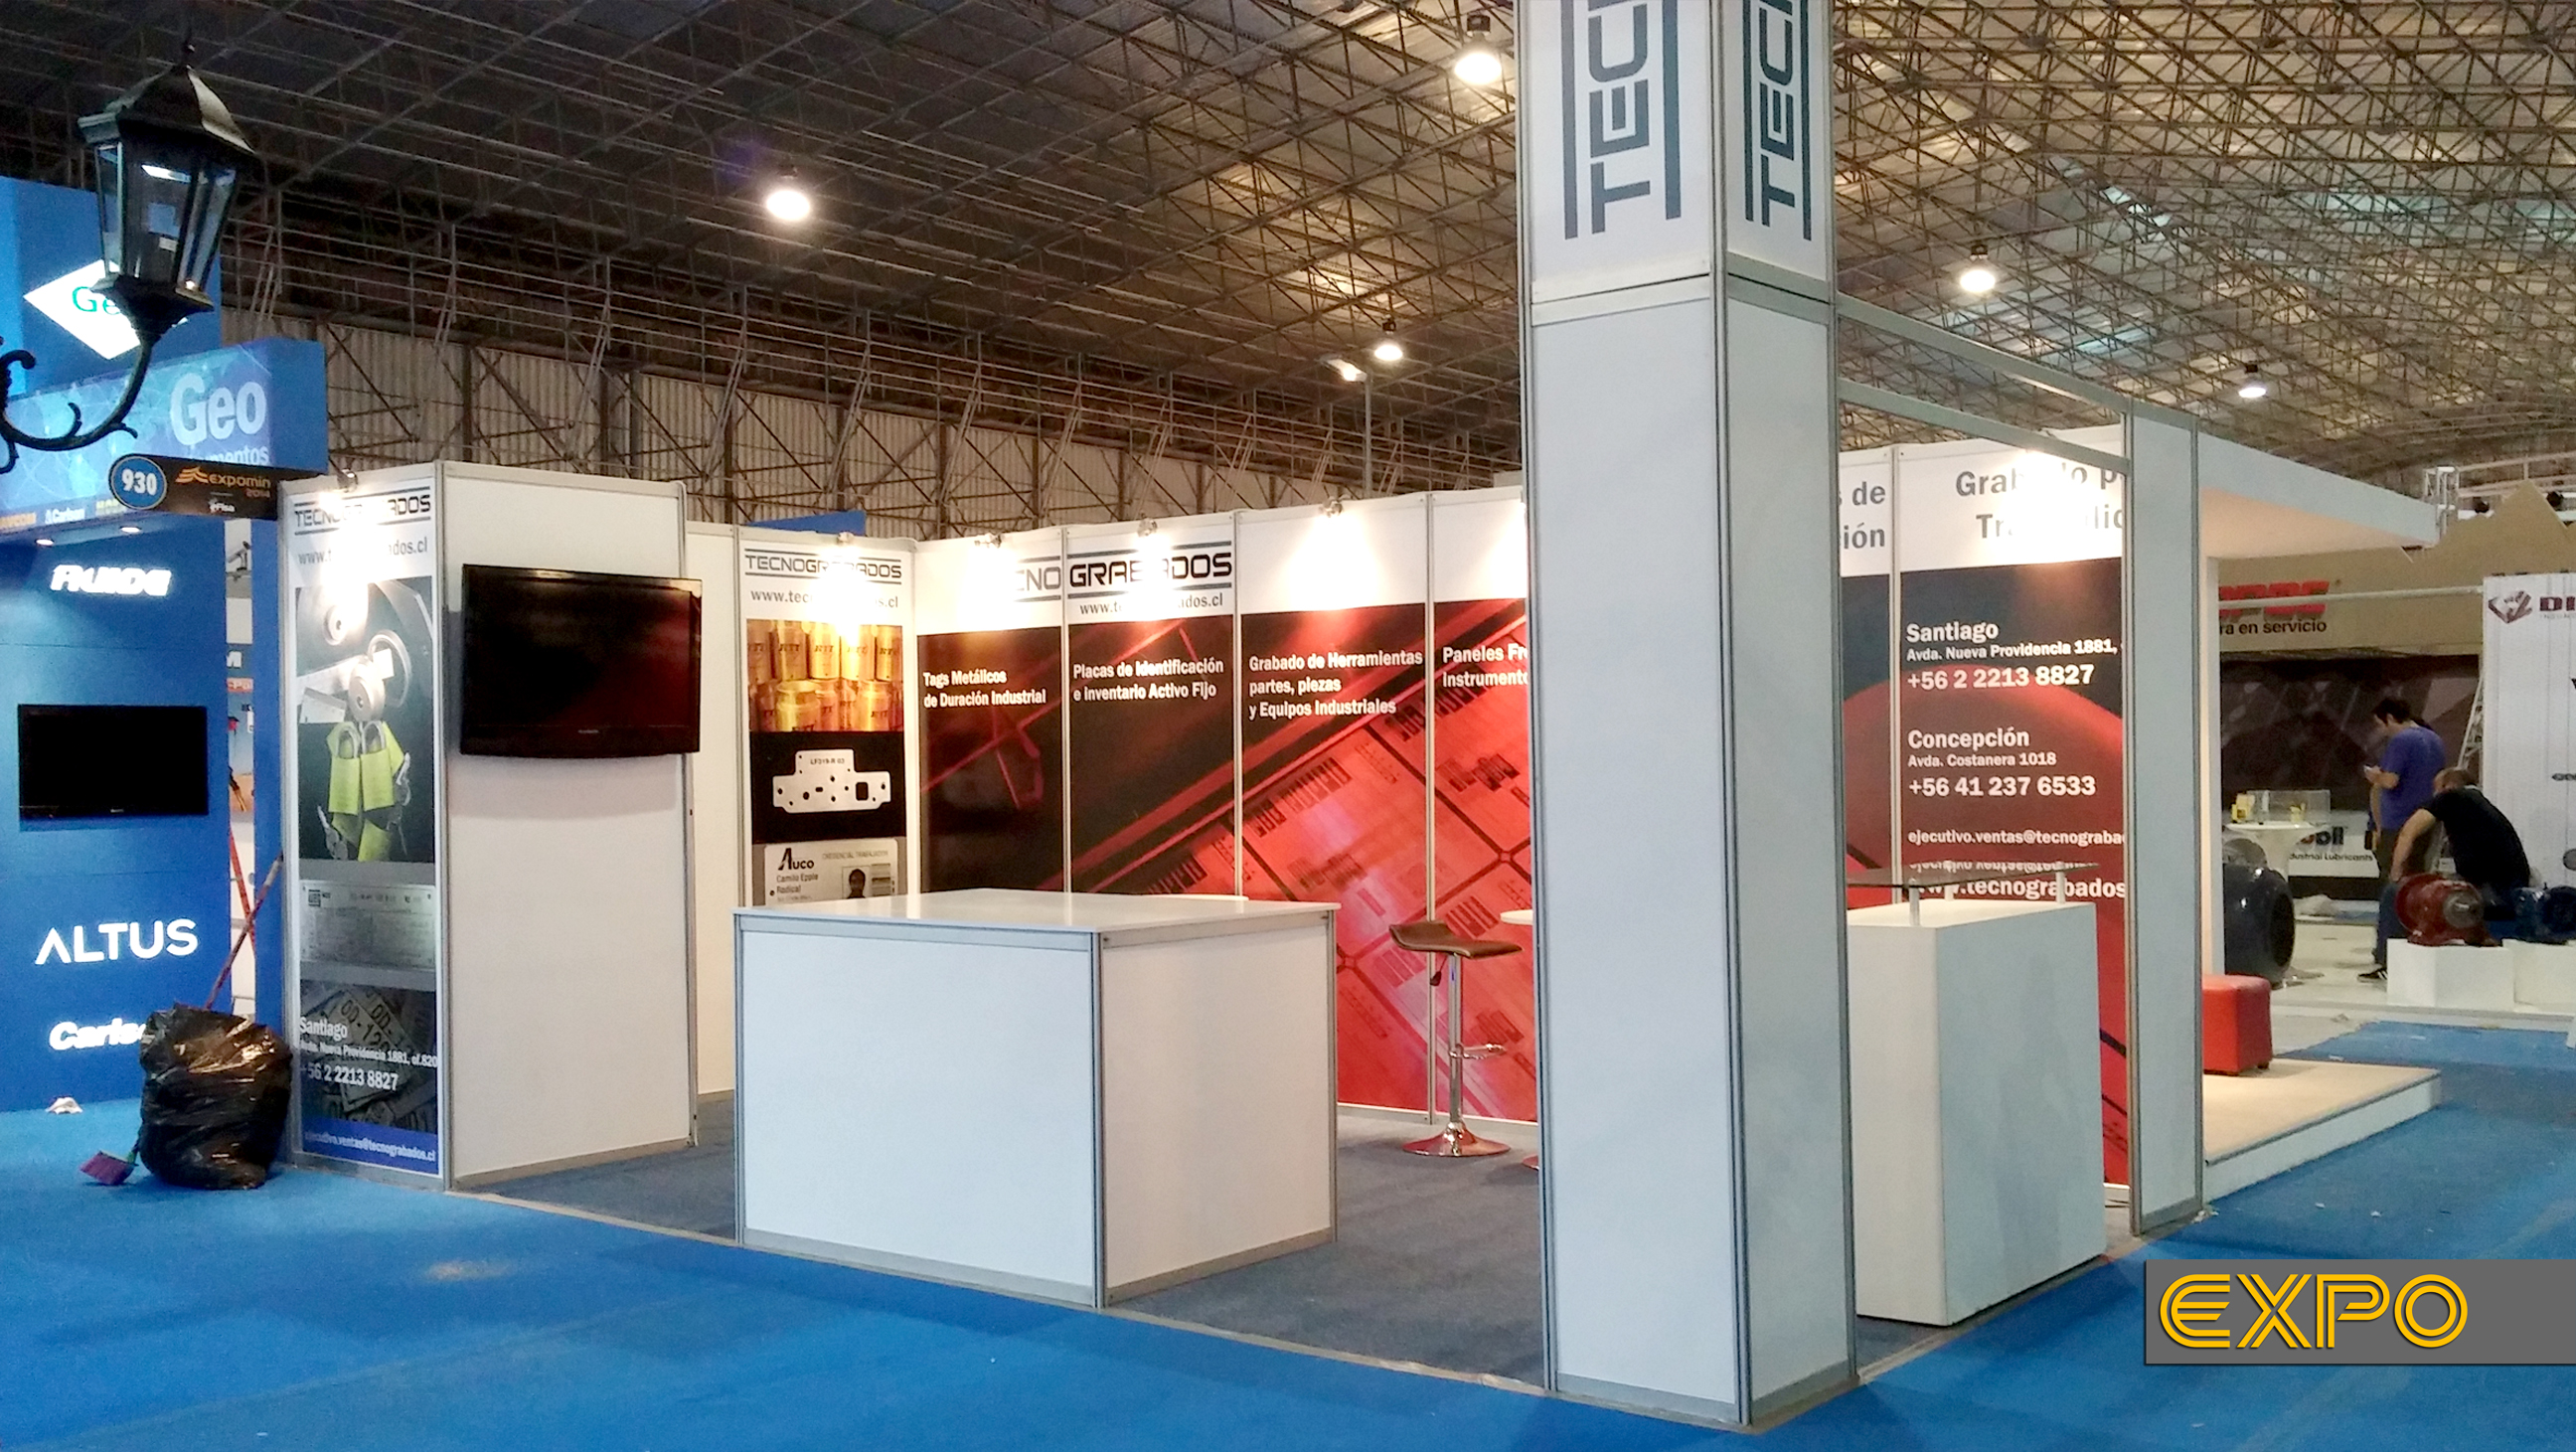 Stand Tencograbados - Expomin 2014